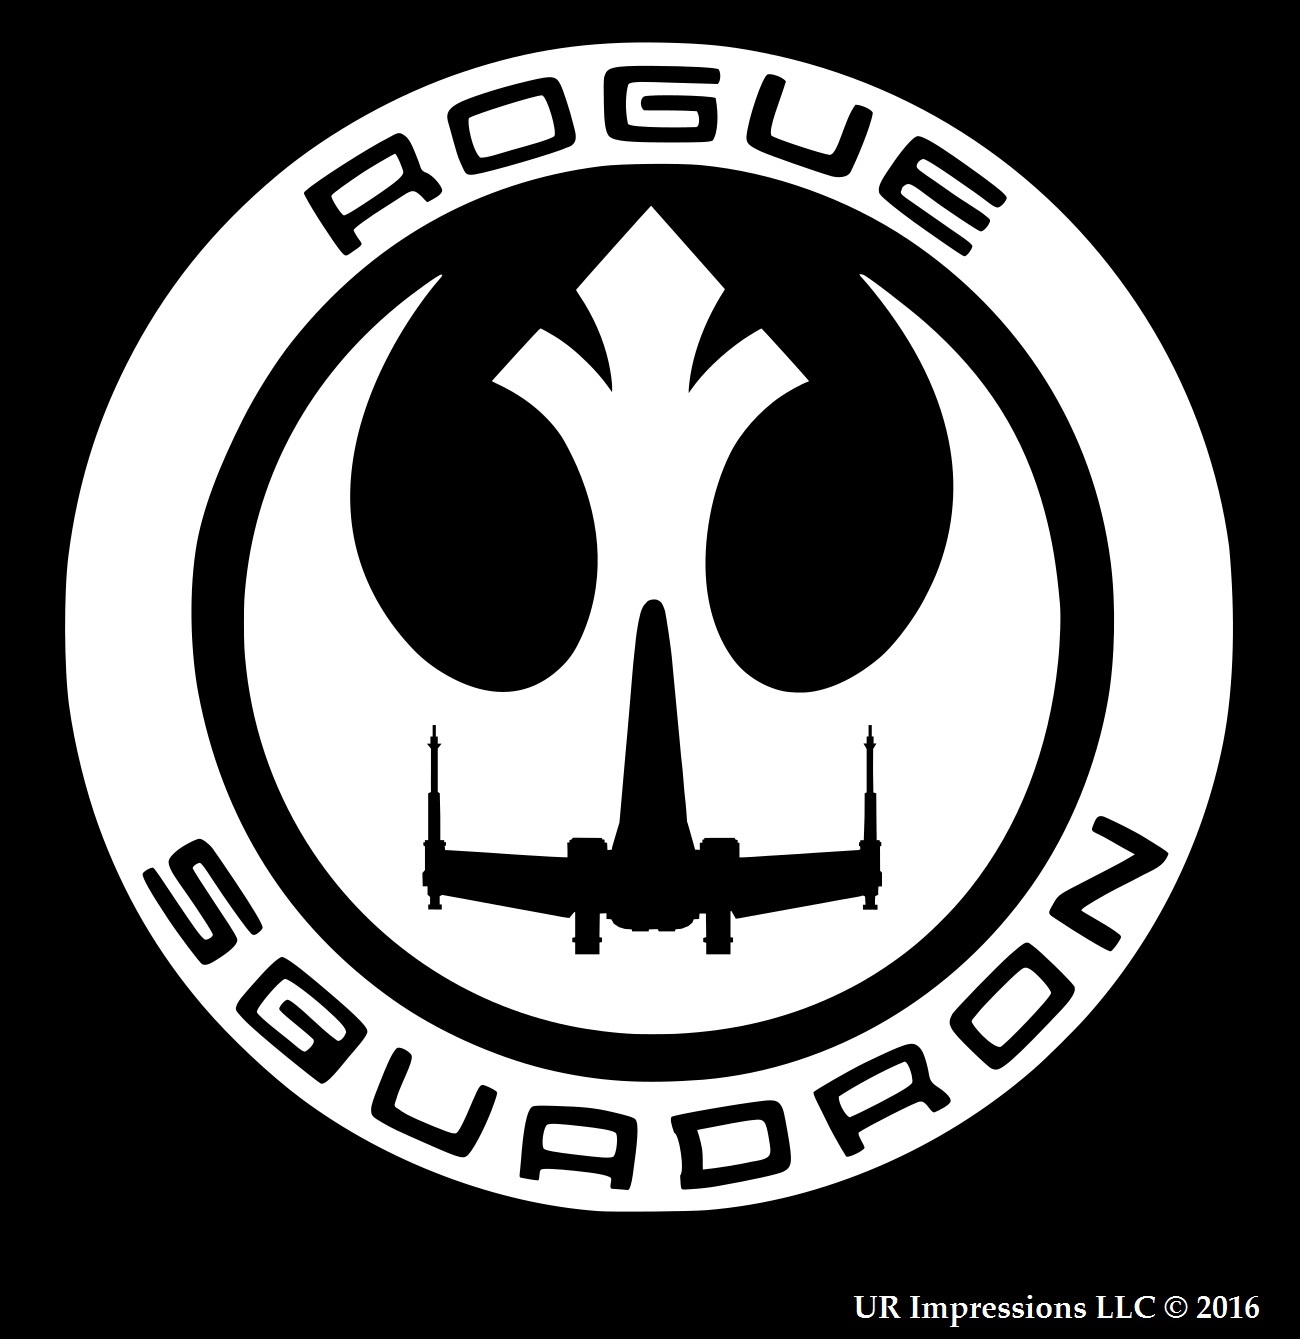 Rogue Squadron Star Wars Rogue One Inspired Decal Vinyl Sticker Graphics.